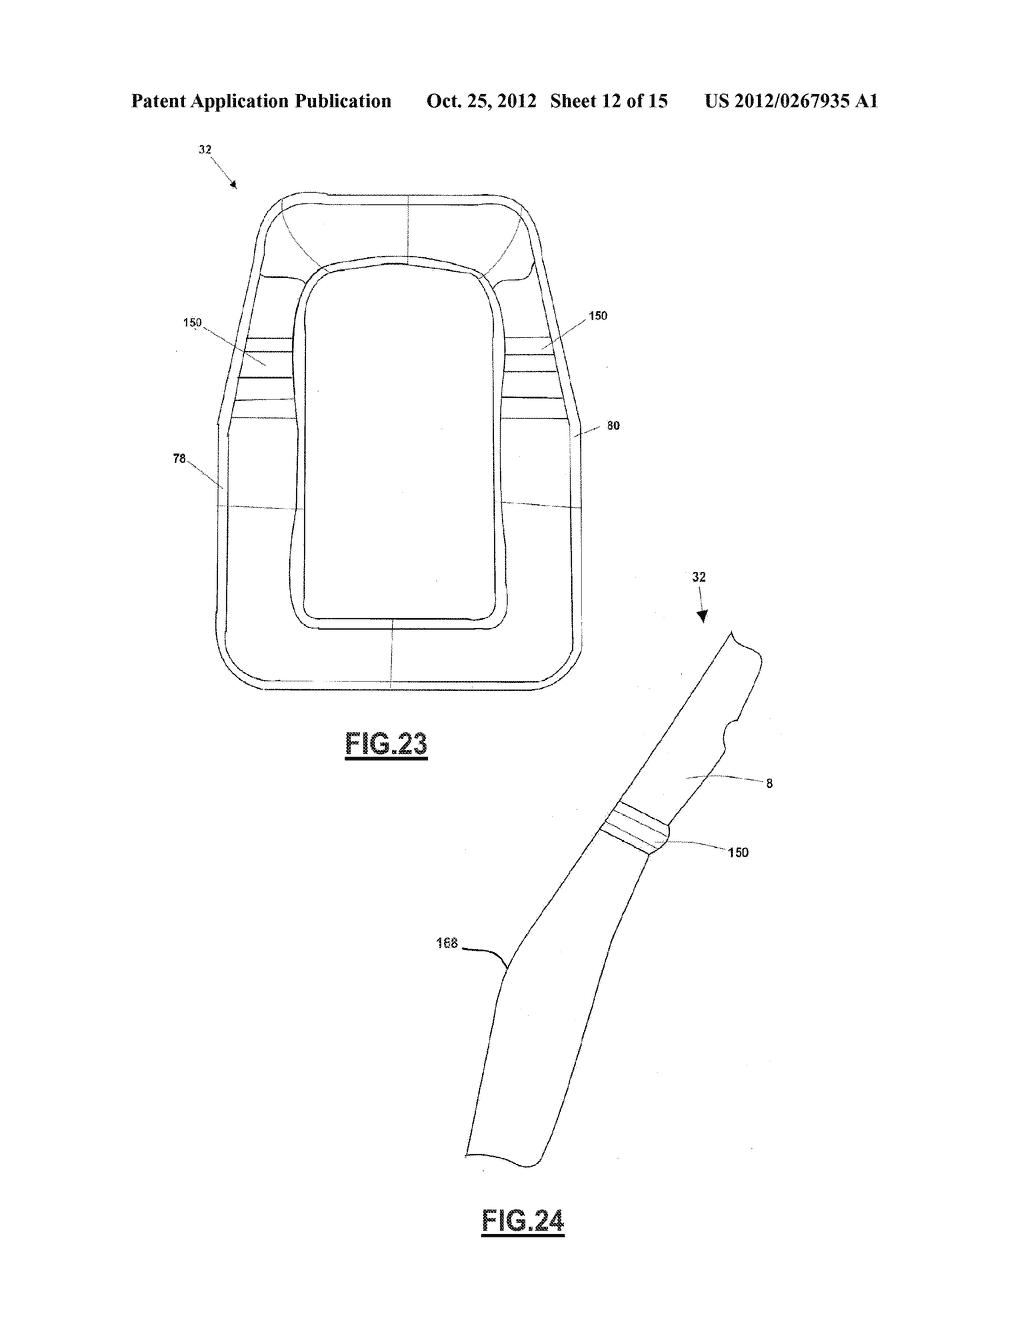 ONE-PIECE SEAT STRUCTURES AND METHOD OF FORMING - diagram, schematic, and image 13